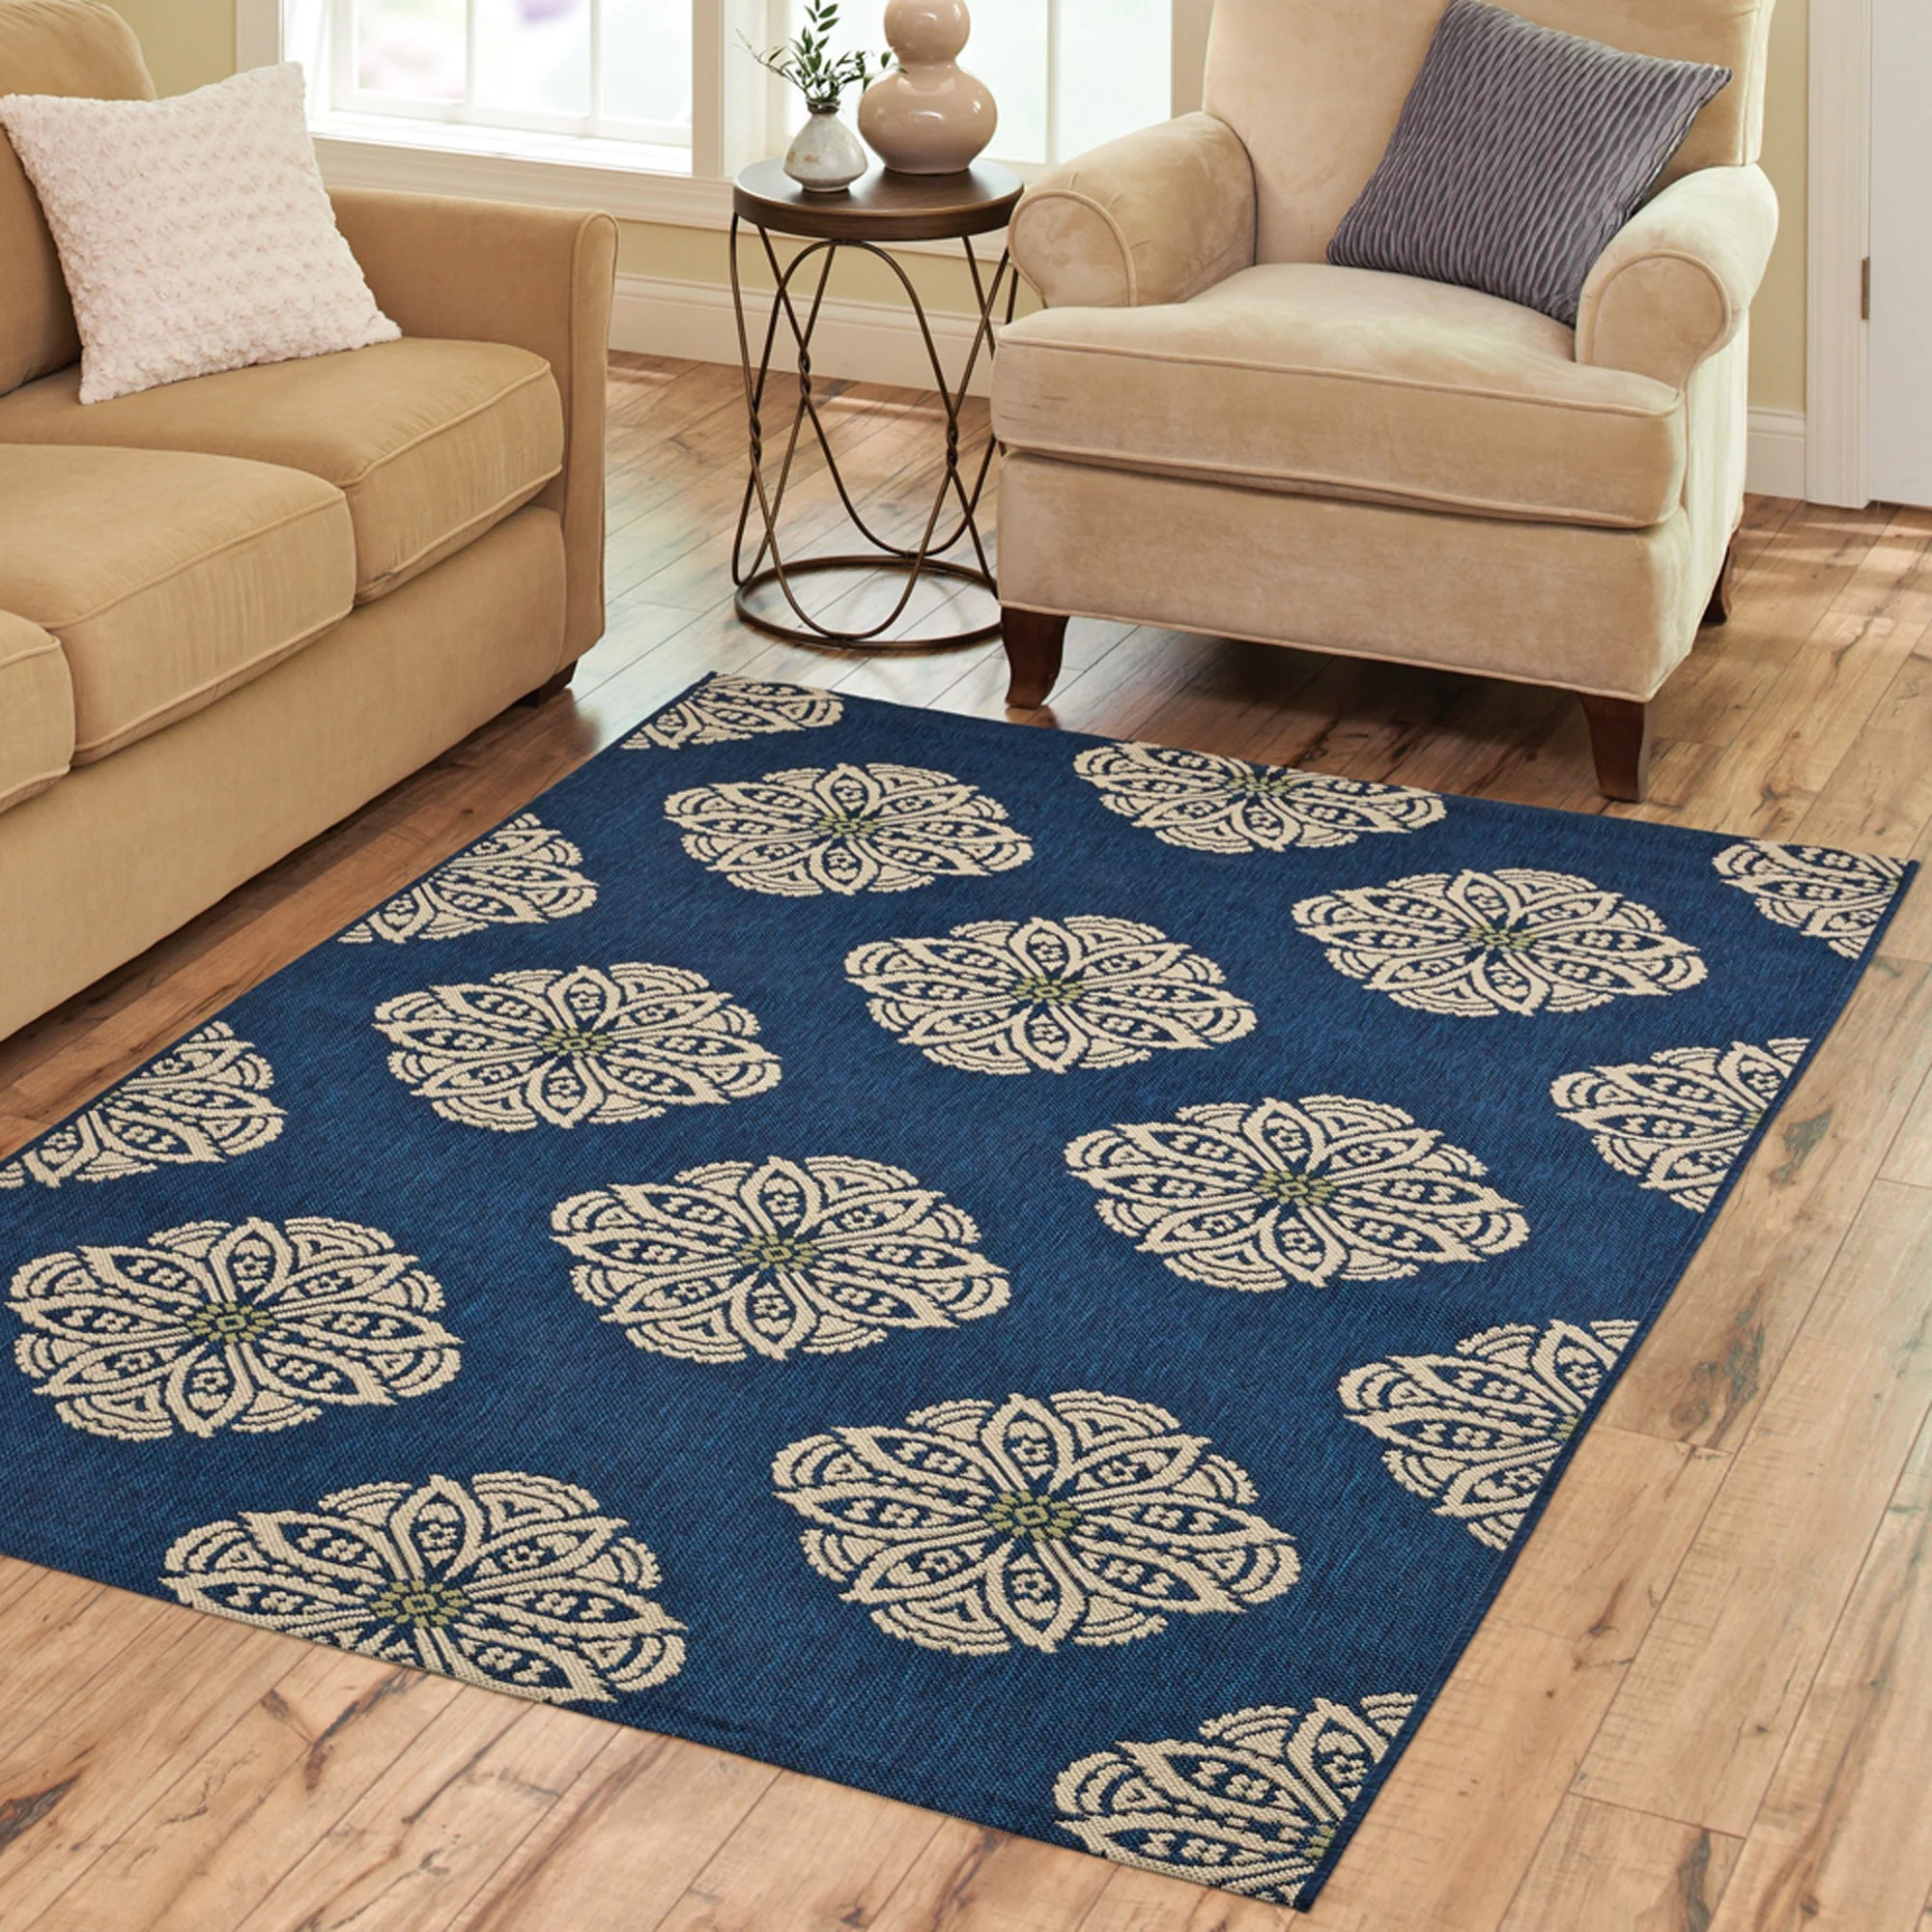 kitchen floor mats walmart Area Rugs